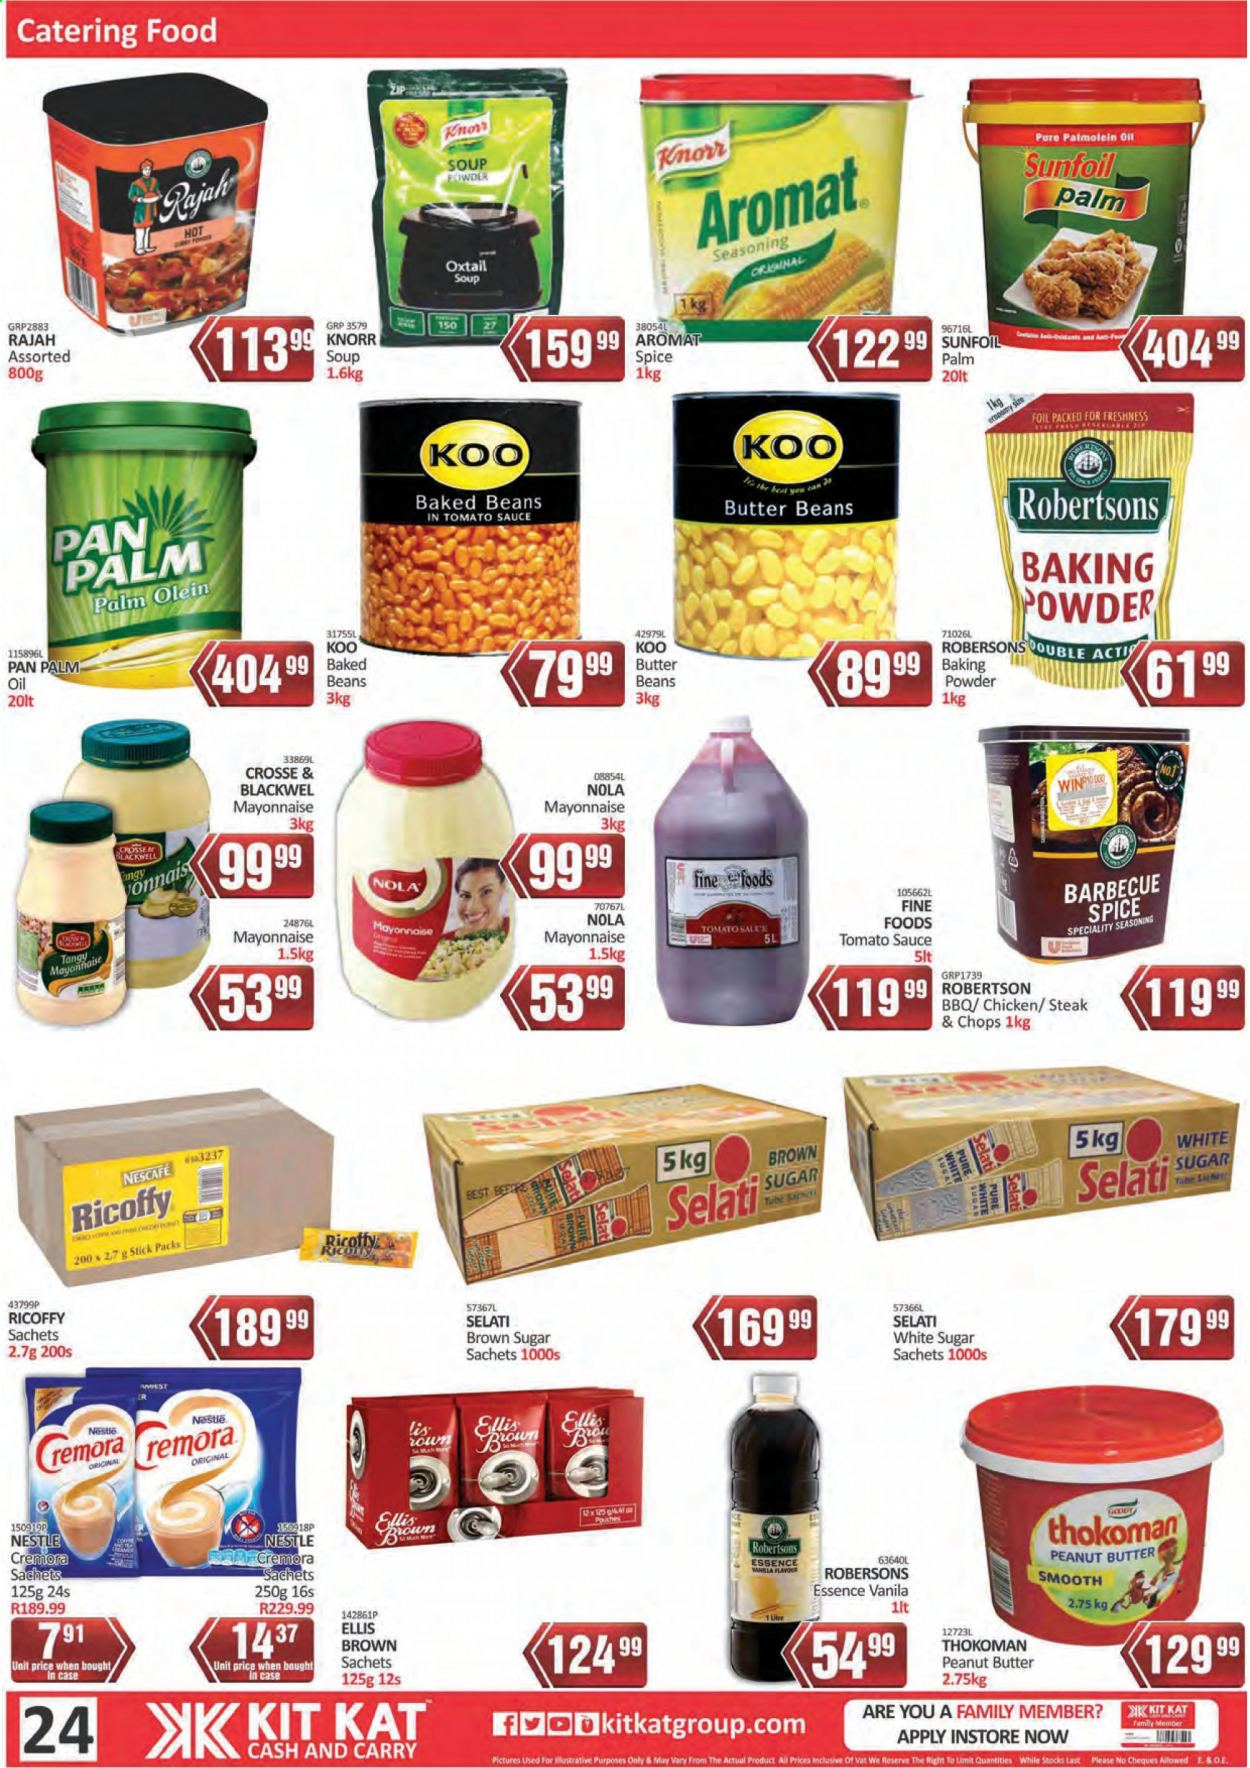 Kit Kat Cash & Carry catalogue  - 02.11.2021 - 05.12.2021. Page 24.